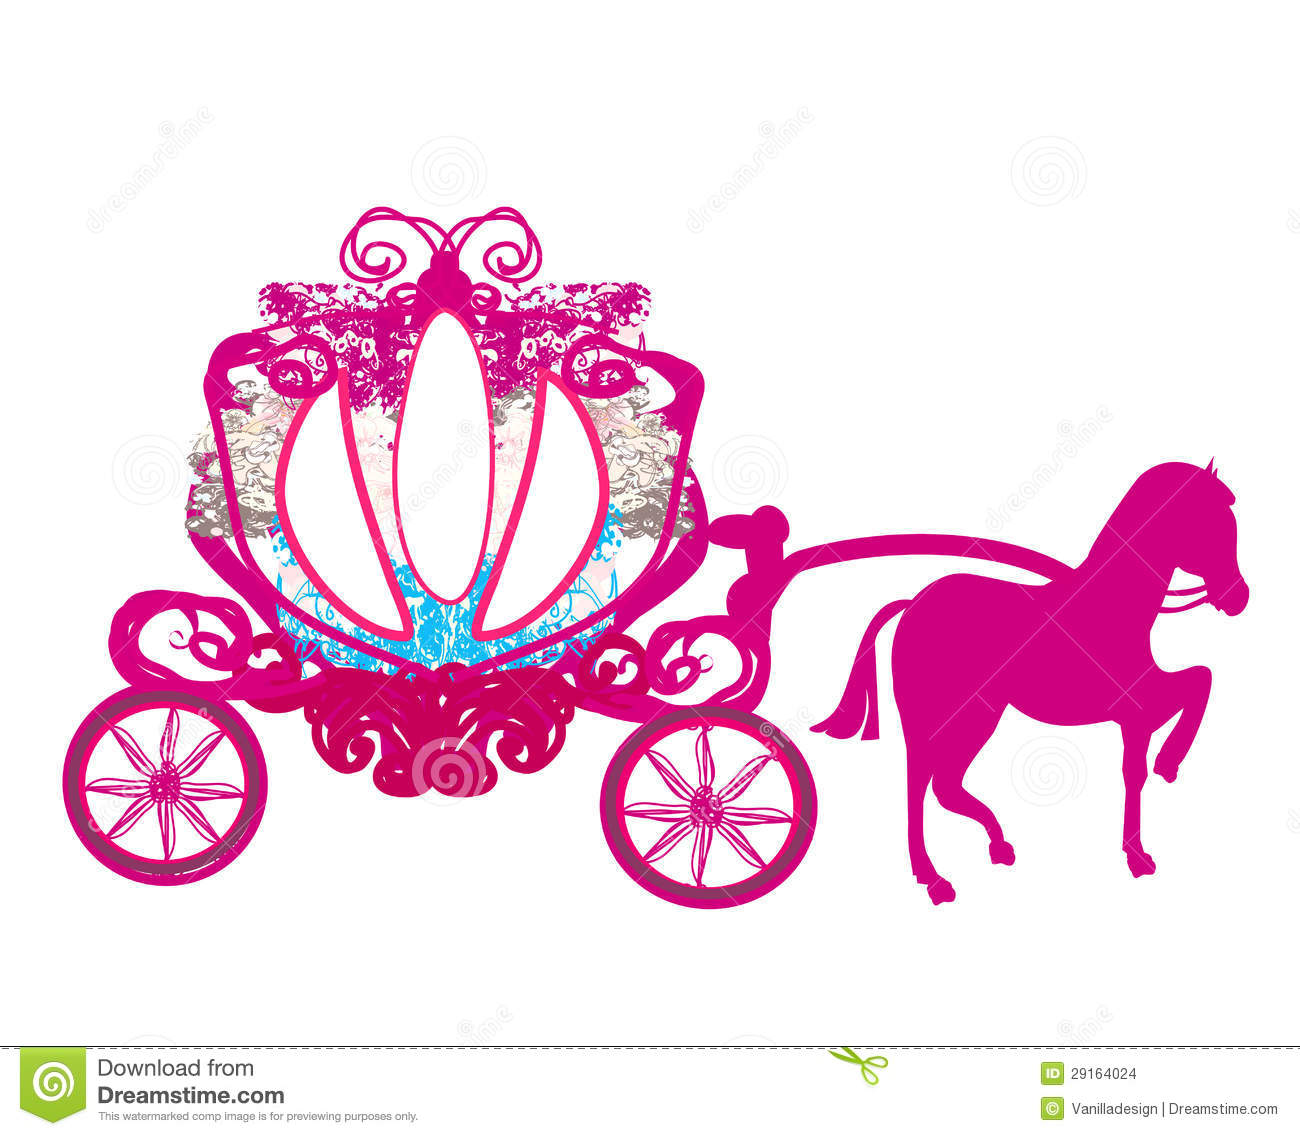 princess carriage clipart free - Clipground